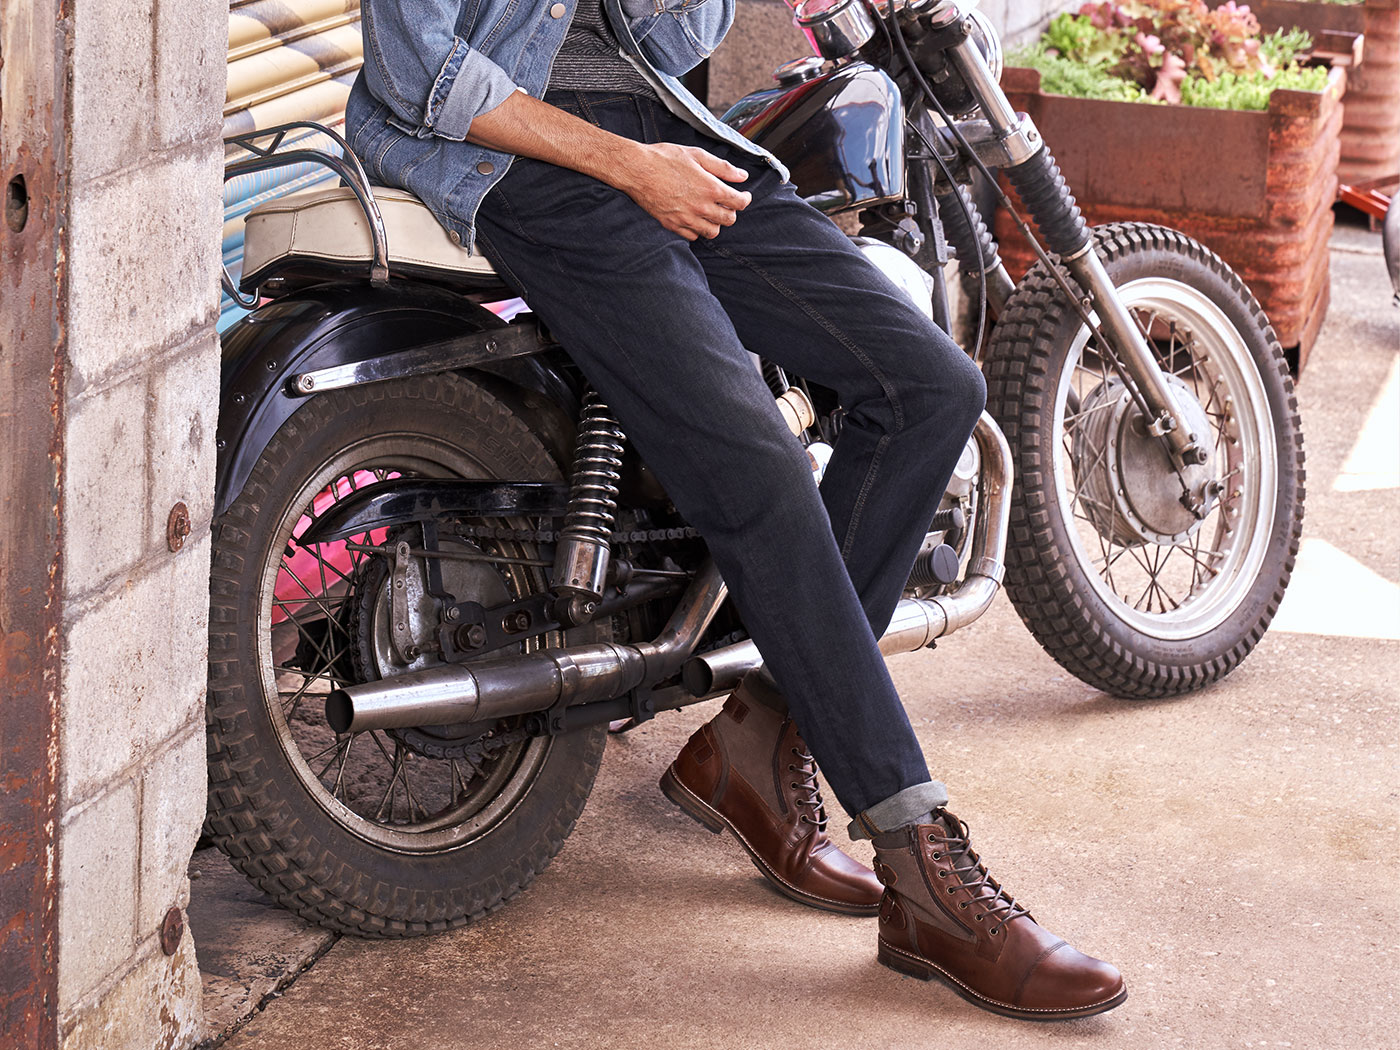 cool man leaning on a motorcycle wearing stylish boots